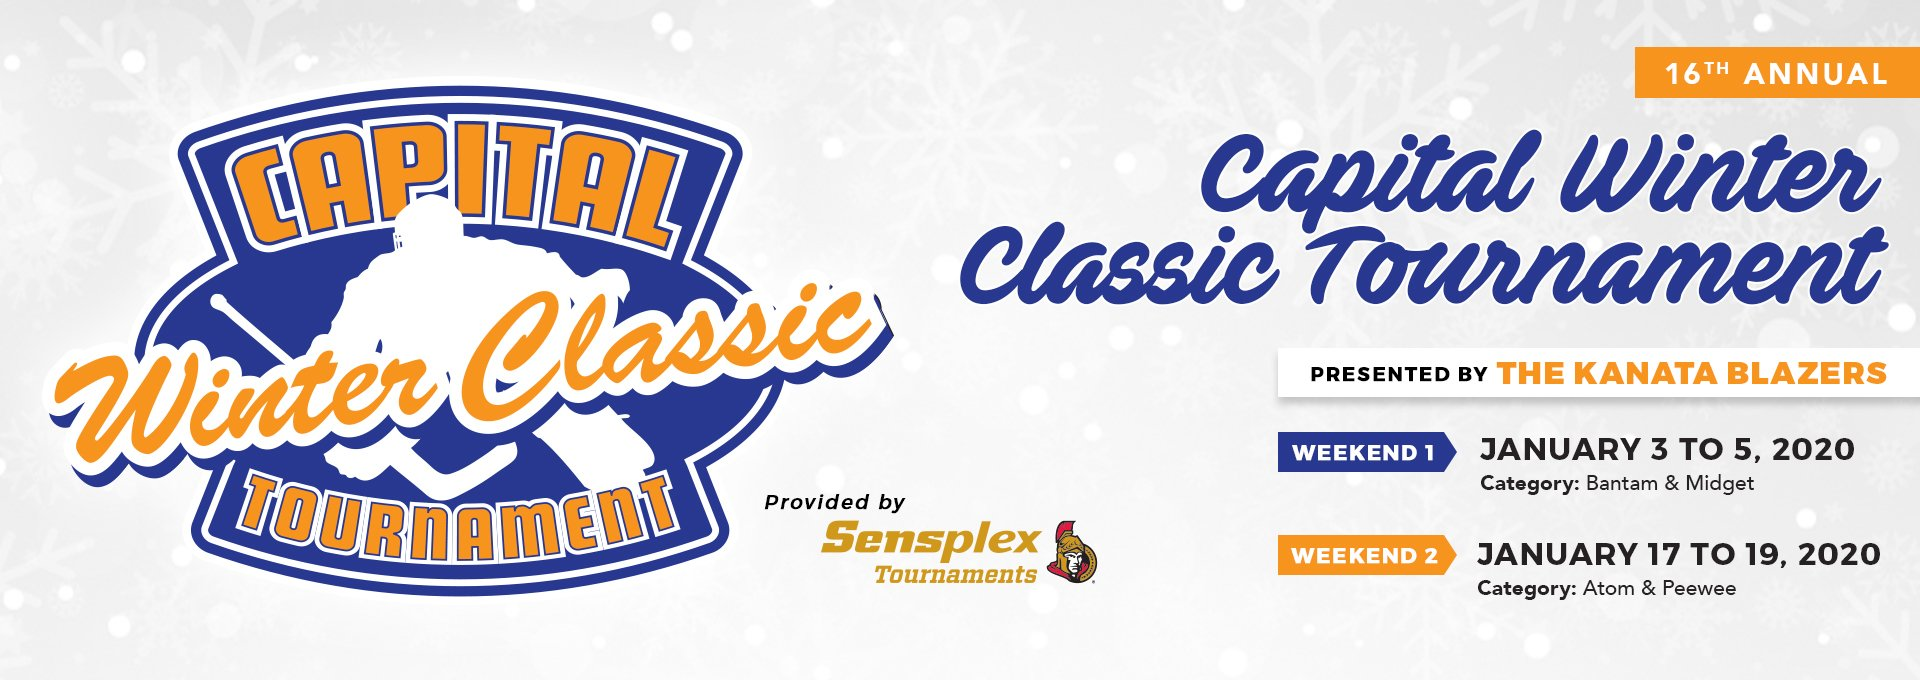 Capital Winter Classic Tournament